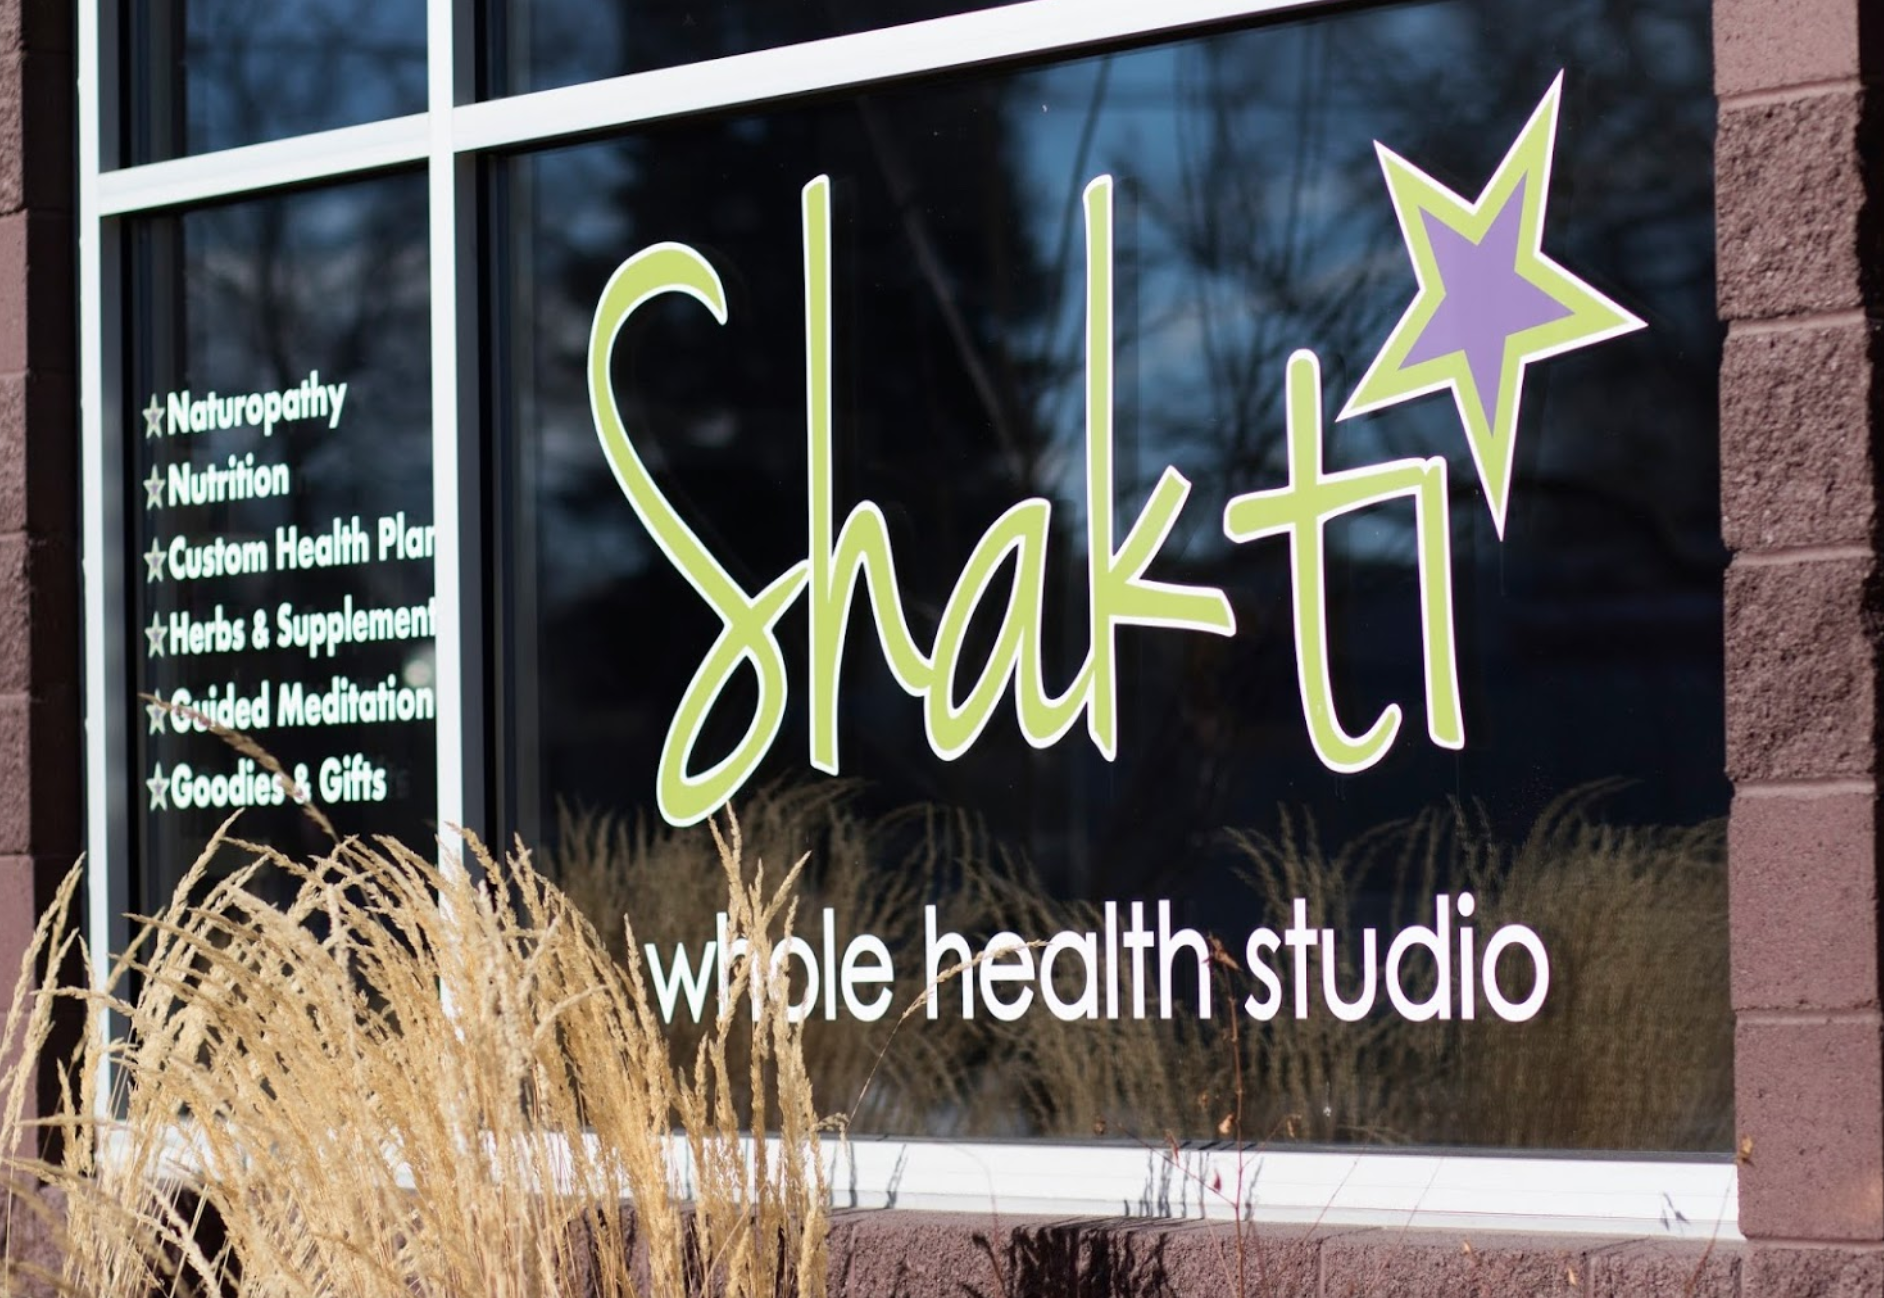 Shakti Whole Health Studio